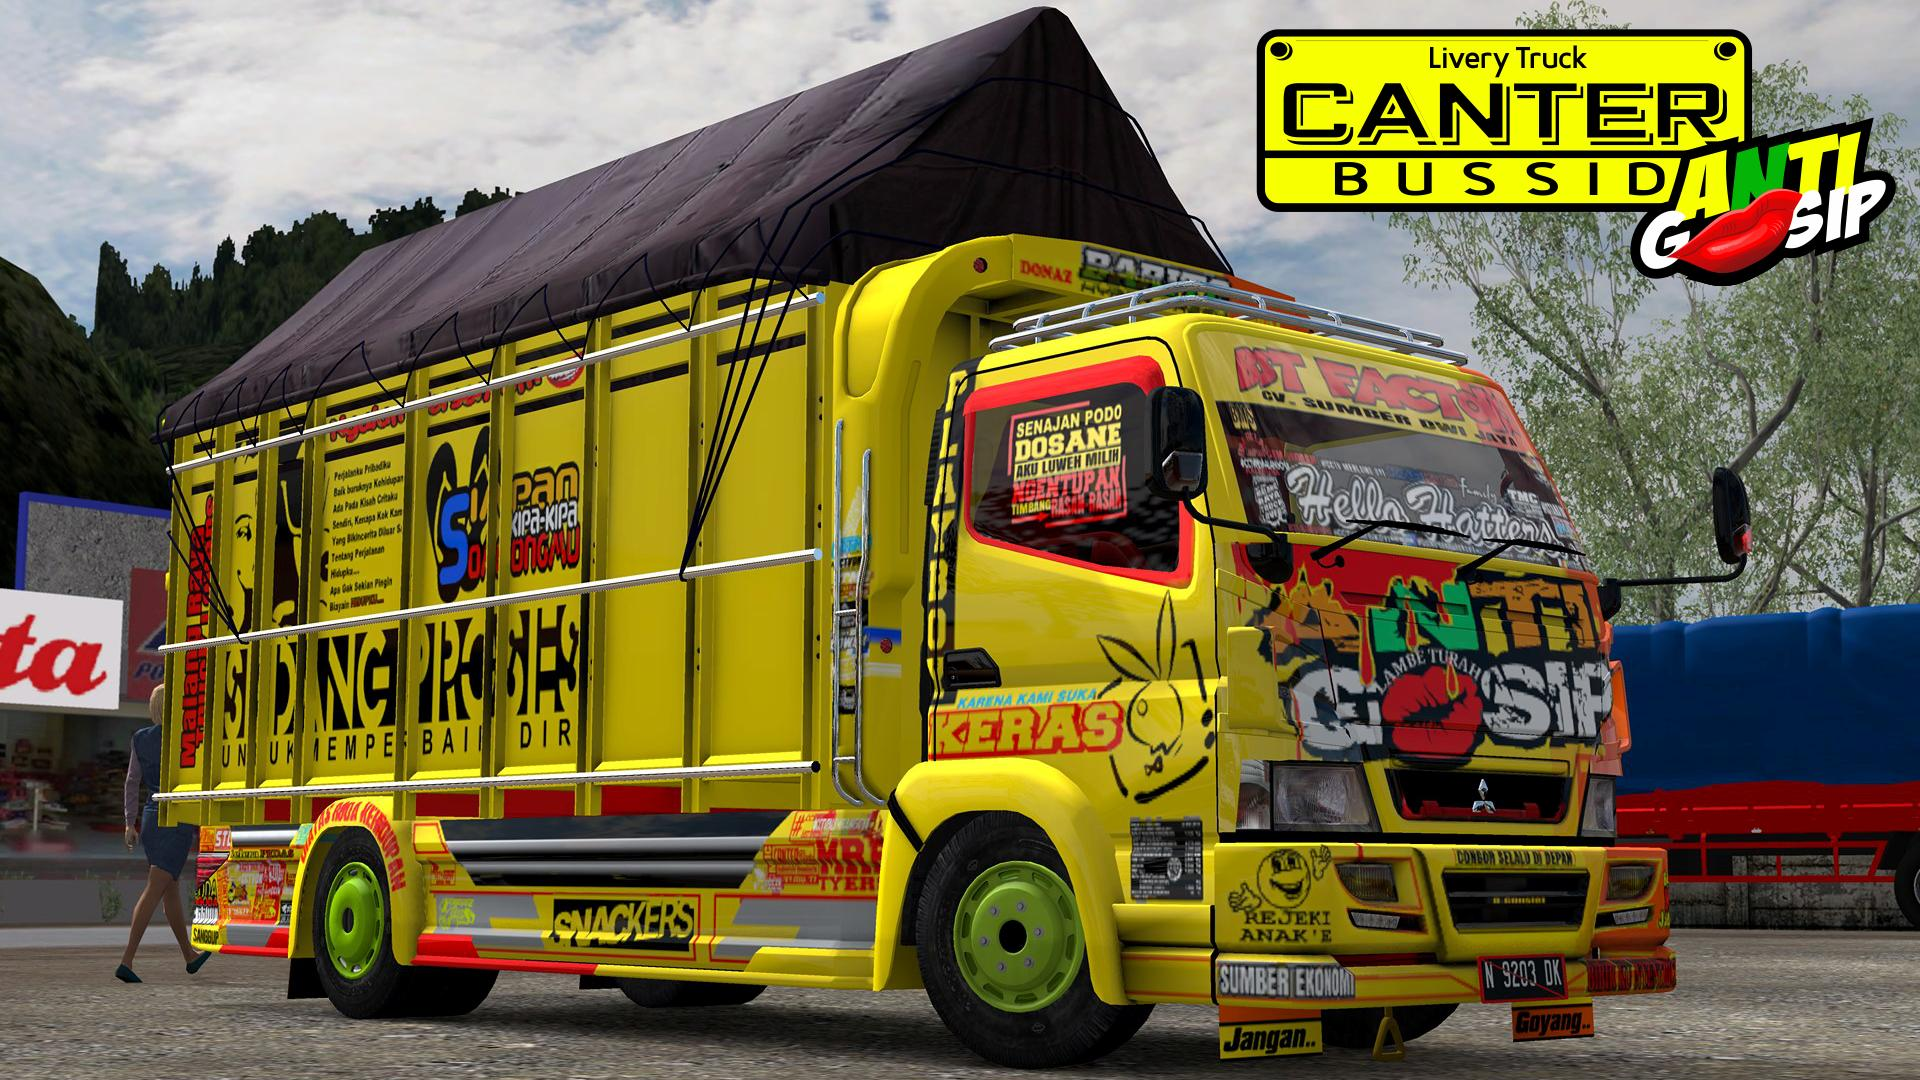 Livery Truck Canter Bussid Anti Gosip For Android Apk Download